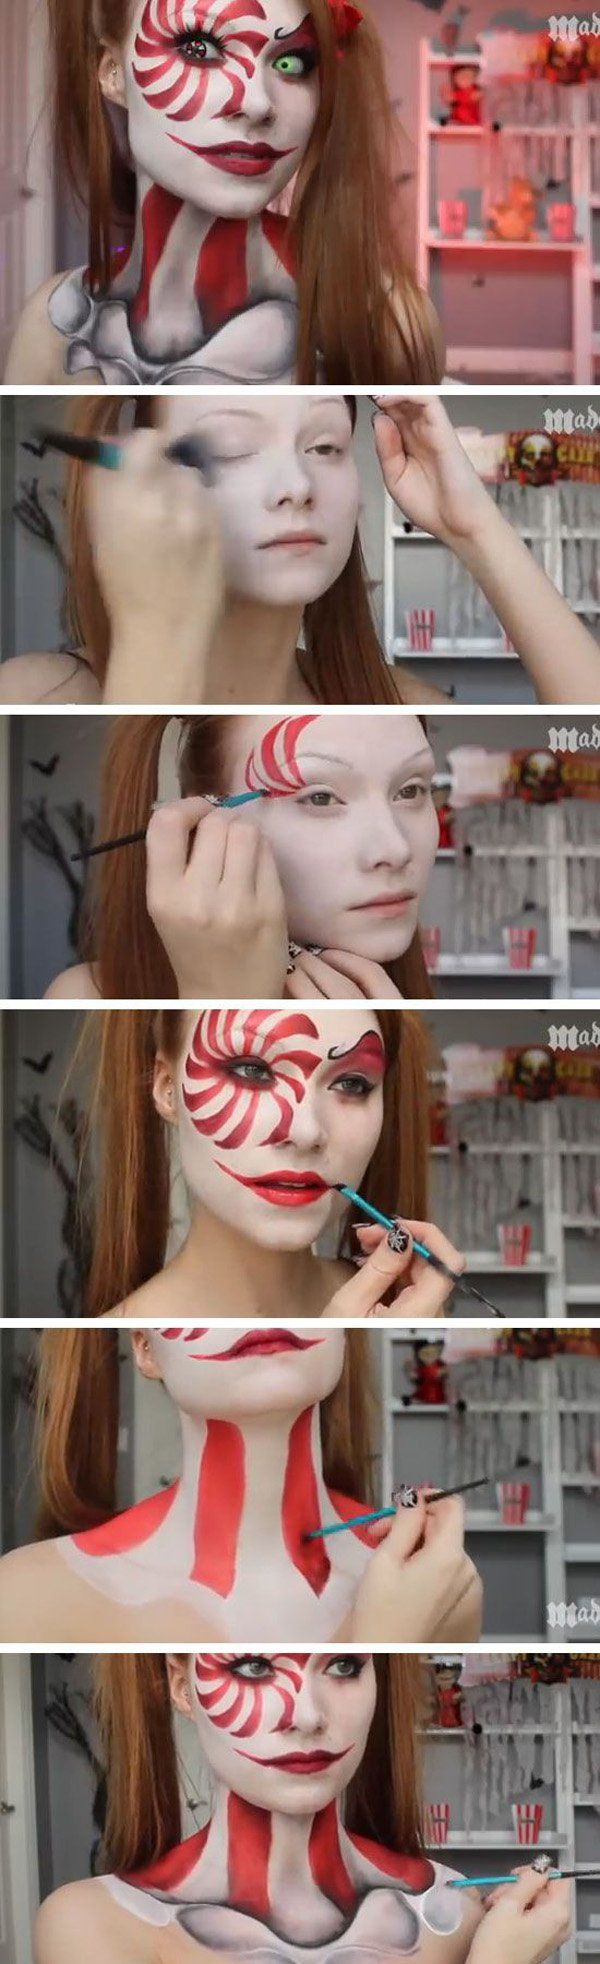 Candy cane slash skeleton girl Halloween makeup. Looking crazy is in when it comes to Halloween, but you should not only try look crazy, but look good while being crazy just like in the image.